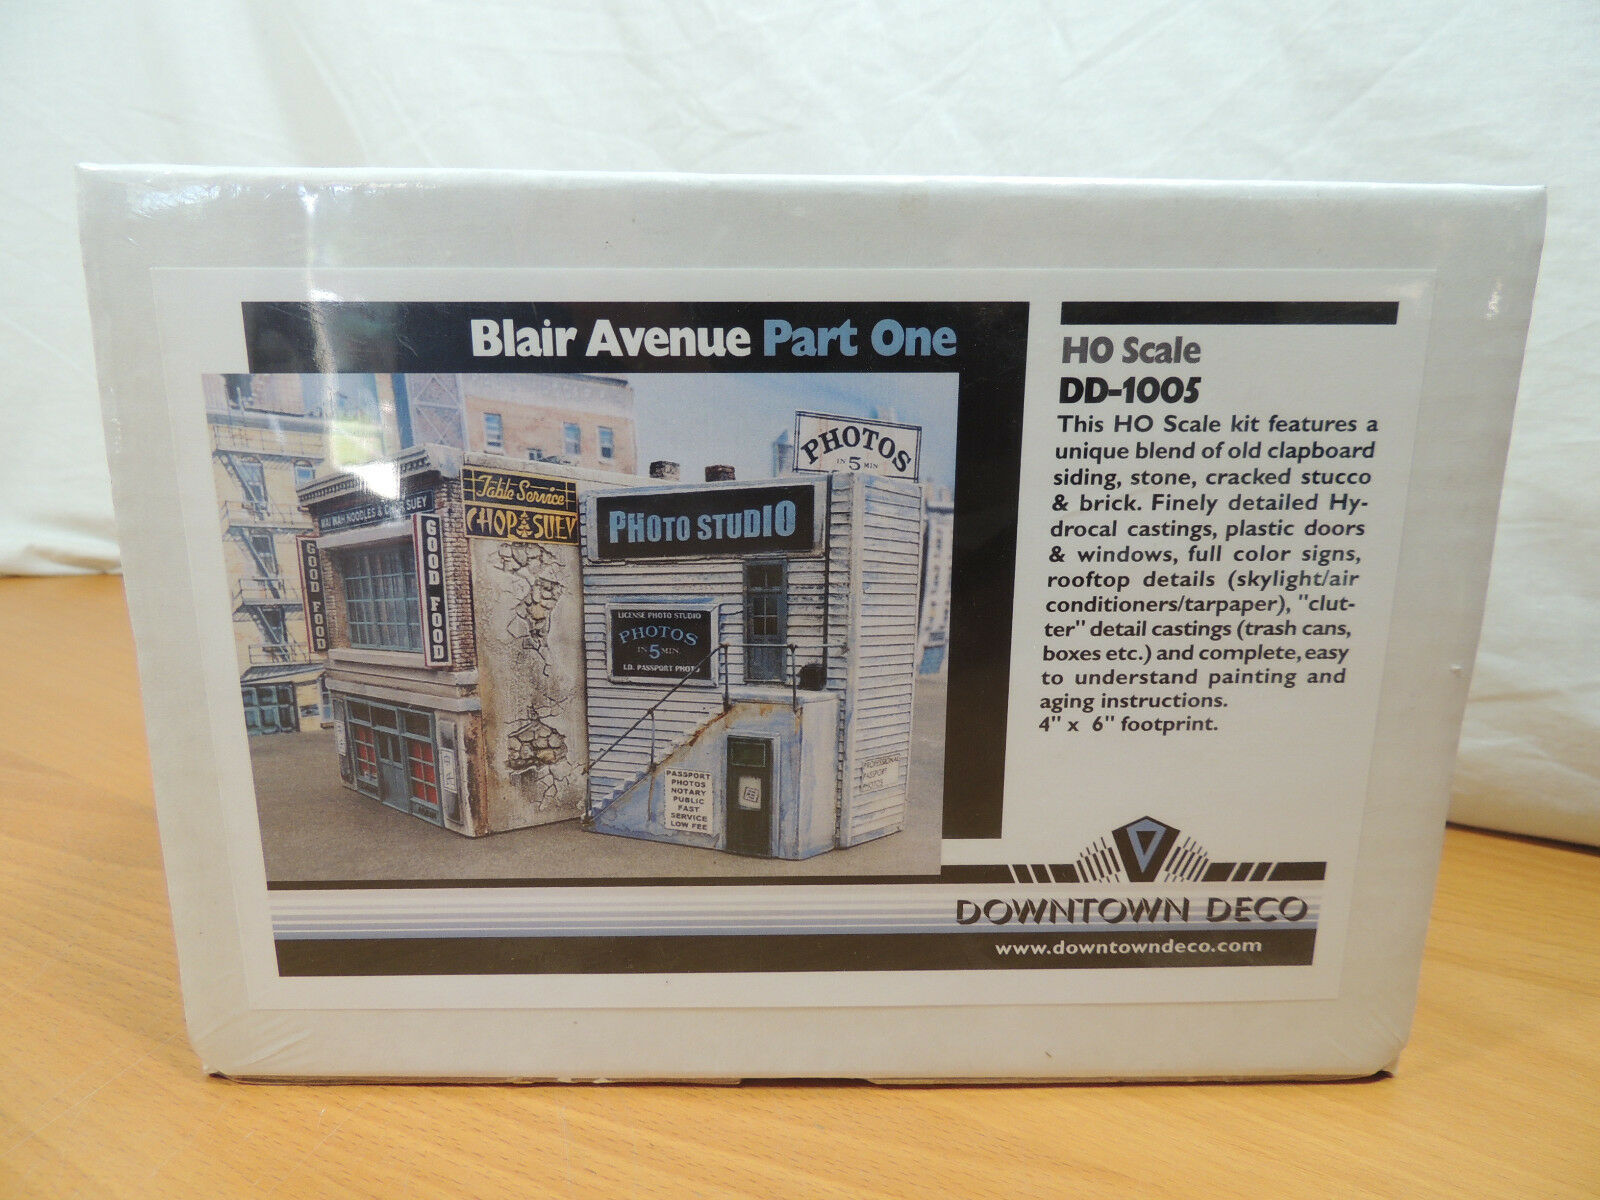 Downtown Deco HO Scale Blair Ave Part One DD-1005 Building Kit